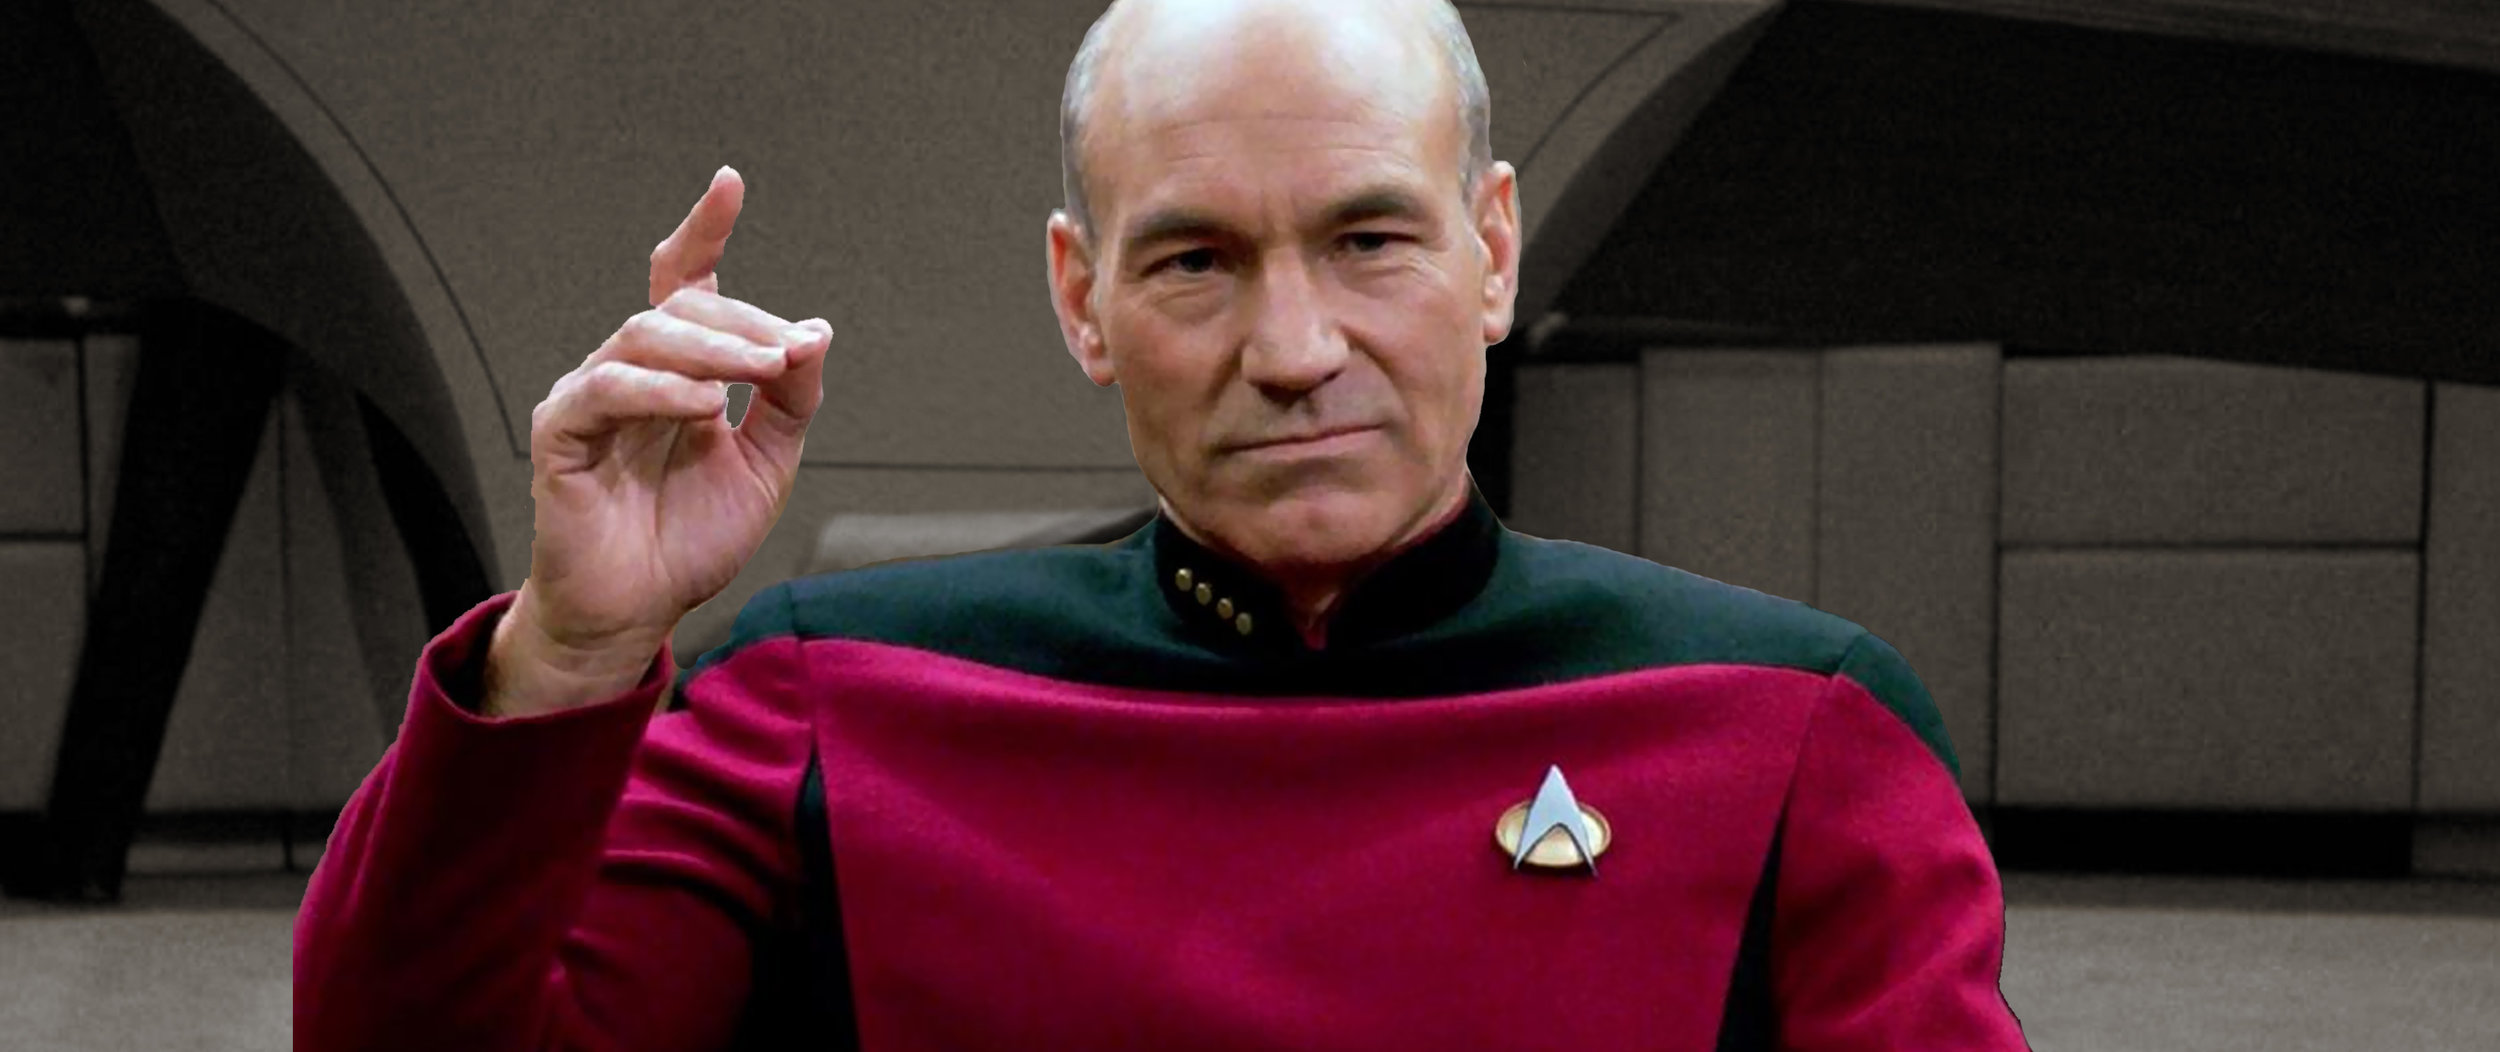 picard-still-making-it-so.jpeg